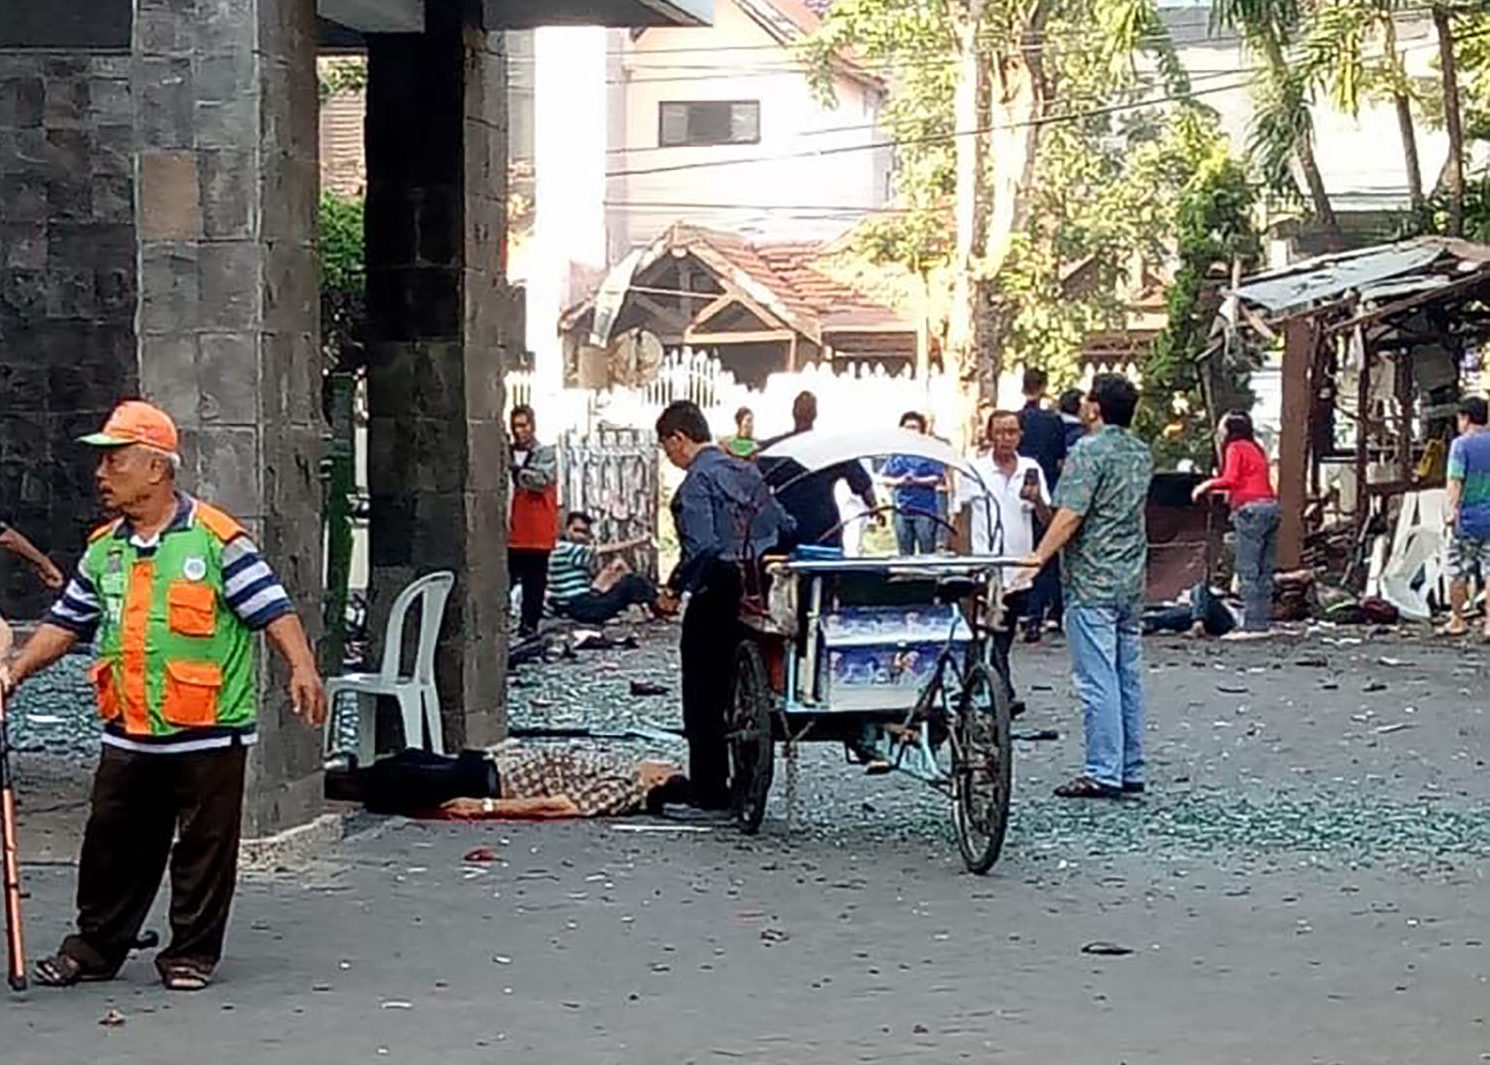 Bystanders observe the aftermath of a suicide bombing at a church in Surabaya, Indonesia on May 13, 2018. PHOTO: TheDCNF